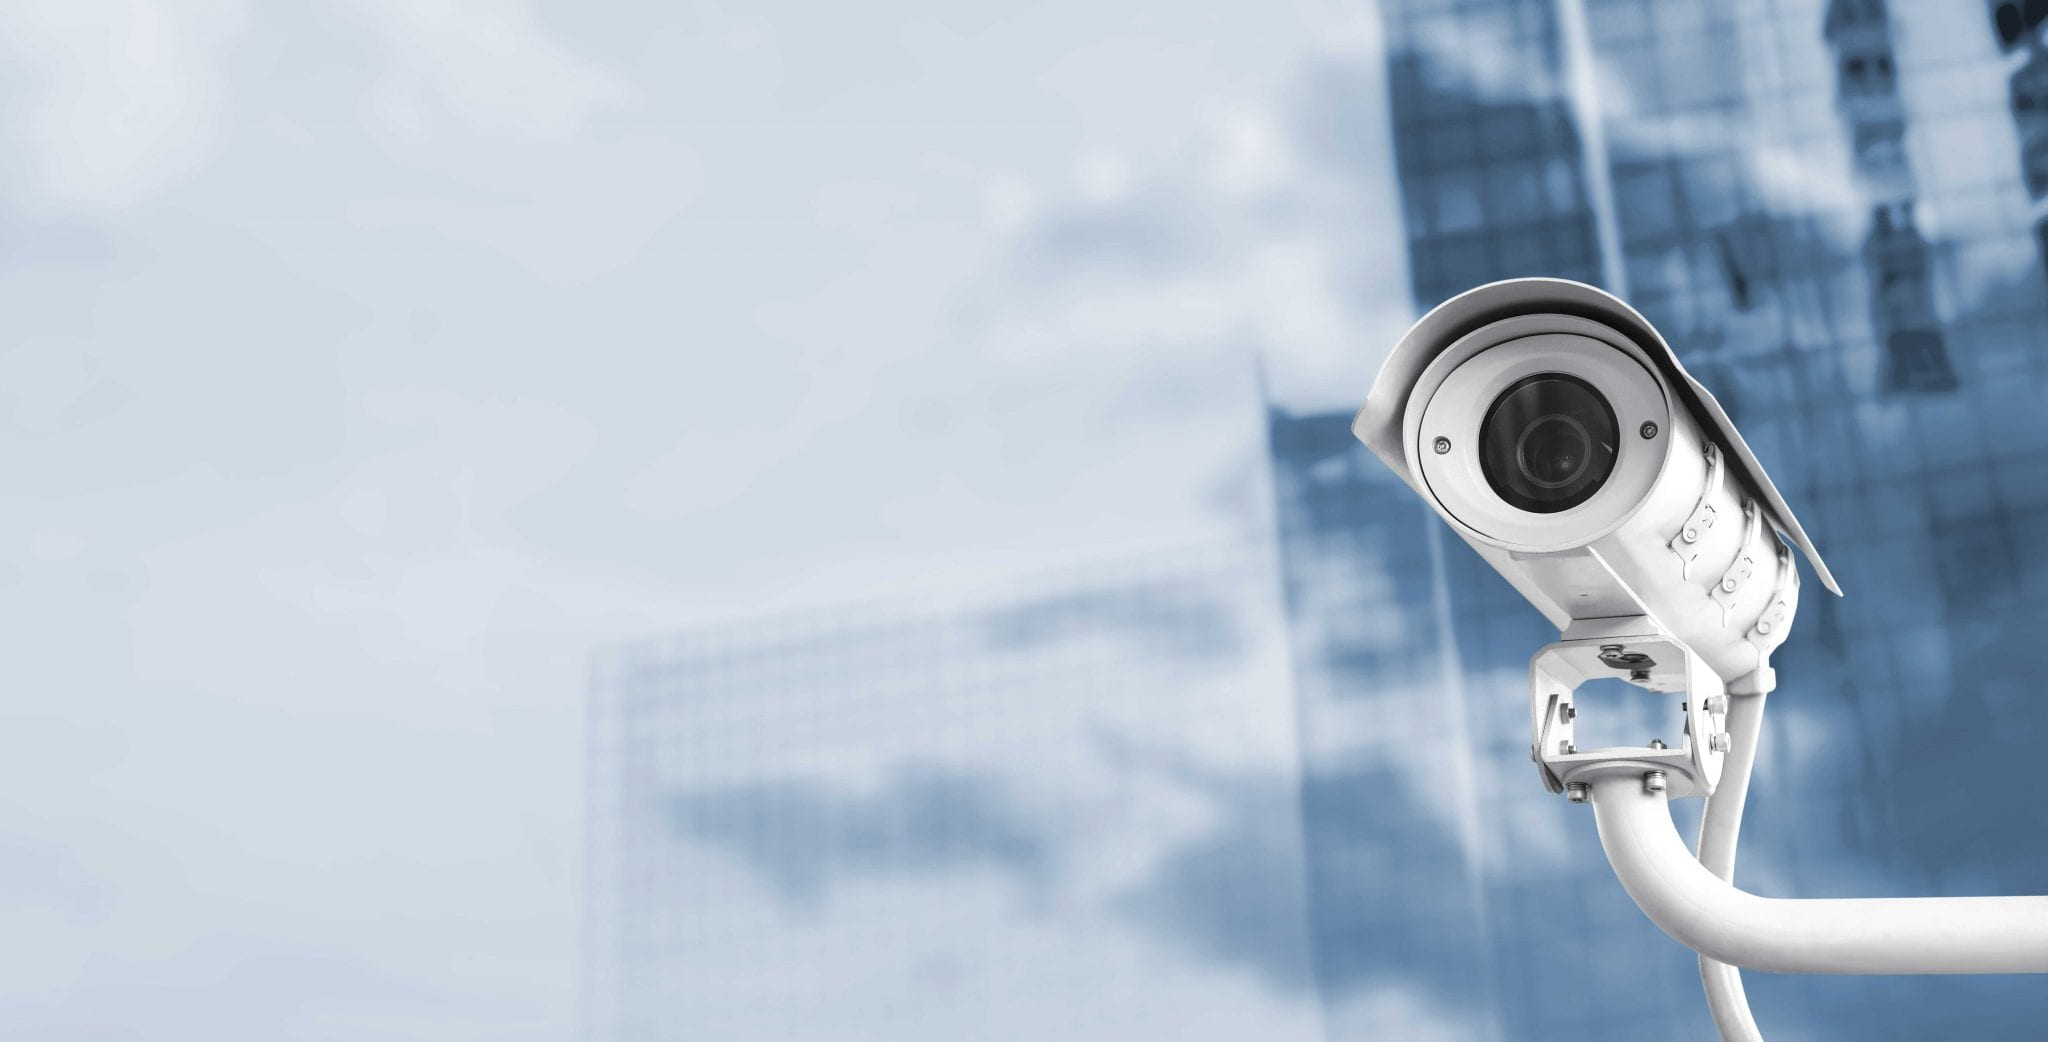 Office space security cameras & system